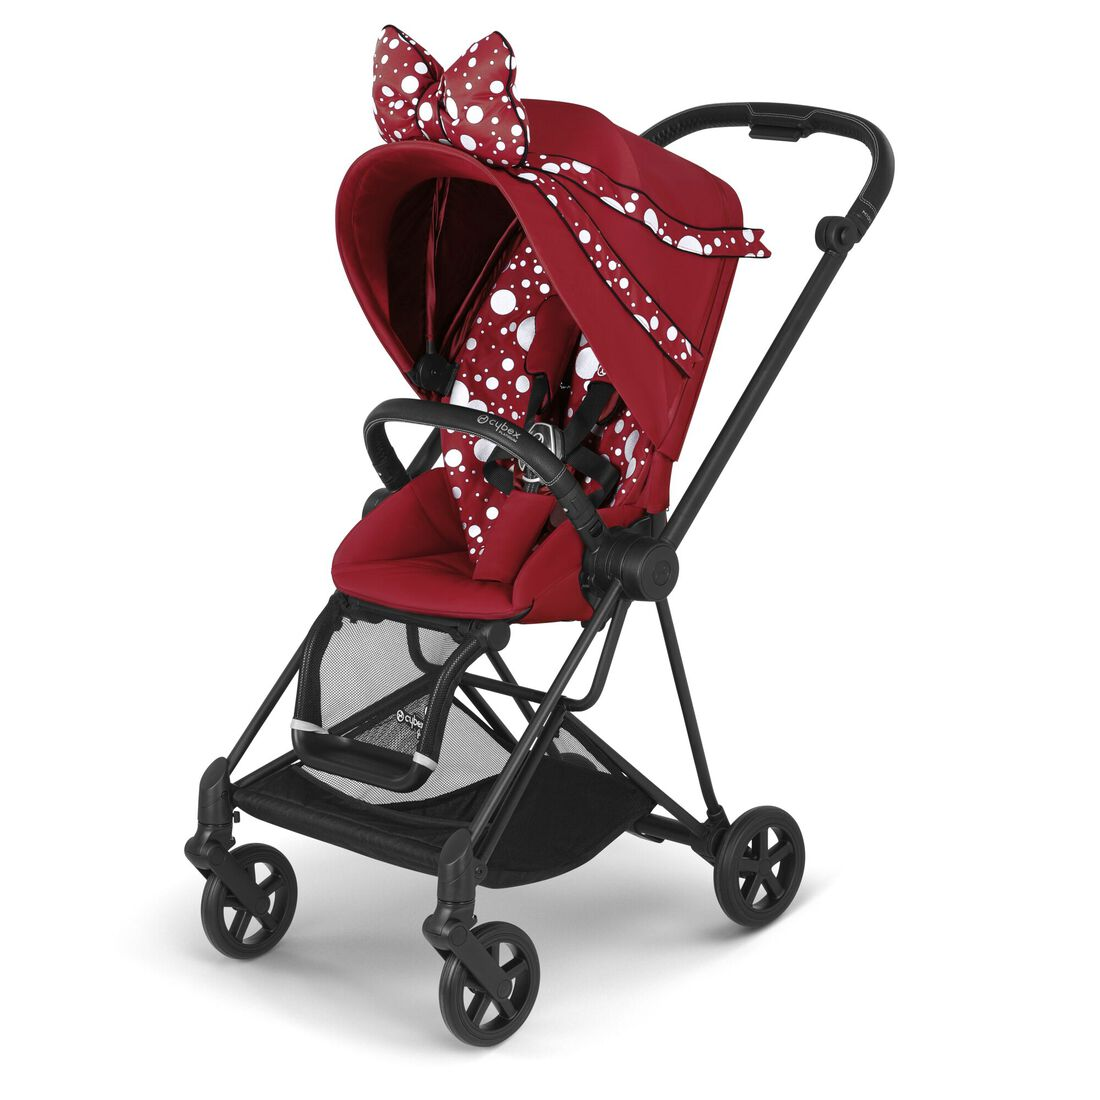 CYBEX Mios Seat Pack - Petticoat Red in Petticoat Red large image number 2